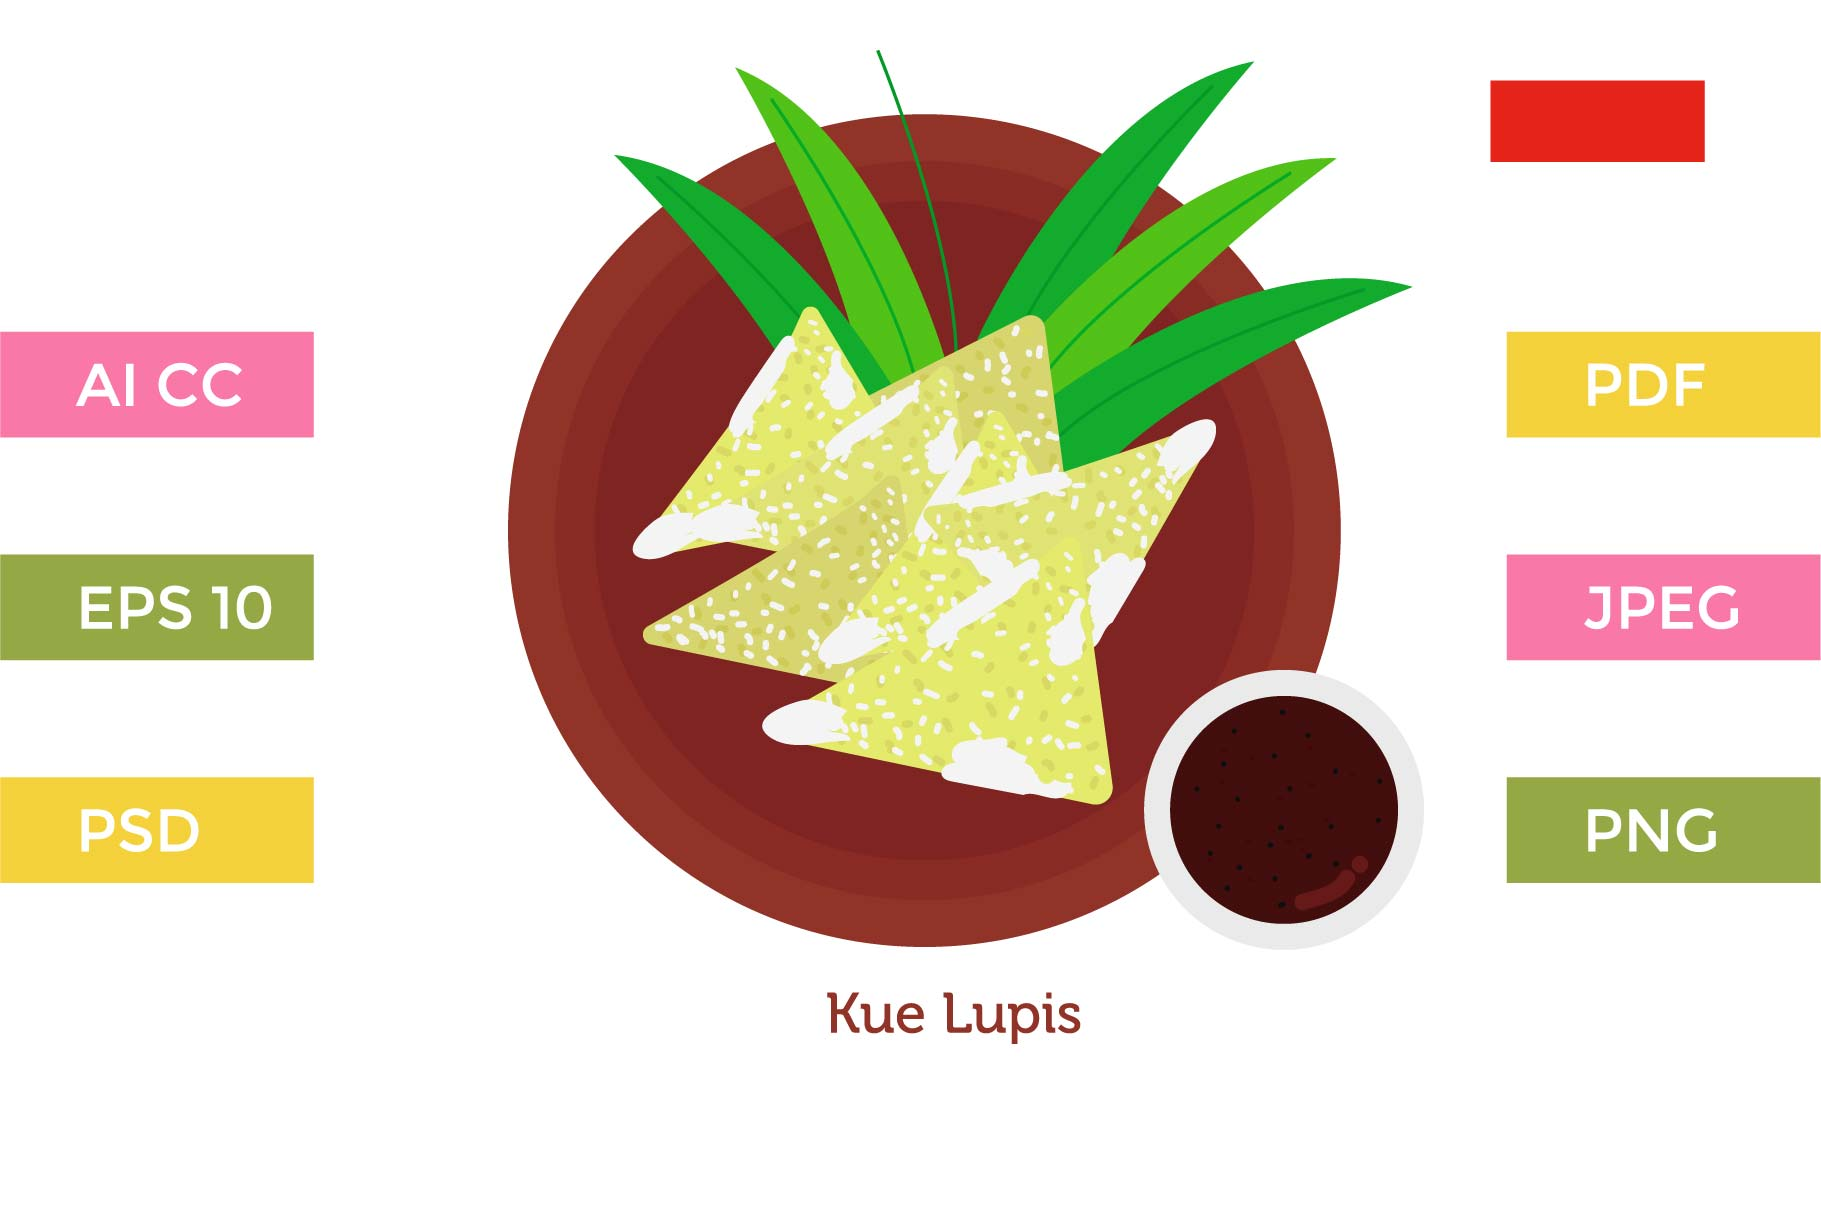 Download Free Kue Lupis Indonesia Cakes Graphic By Griyolabs Creative Fabrica for Cricut Explore, Silhouette and other cutting machines.